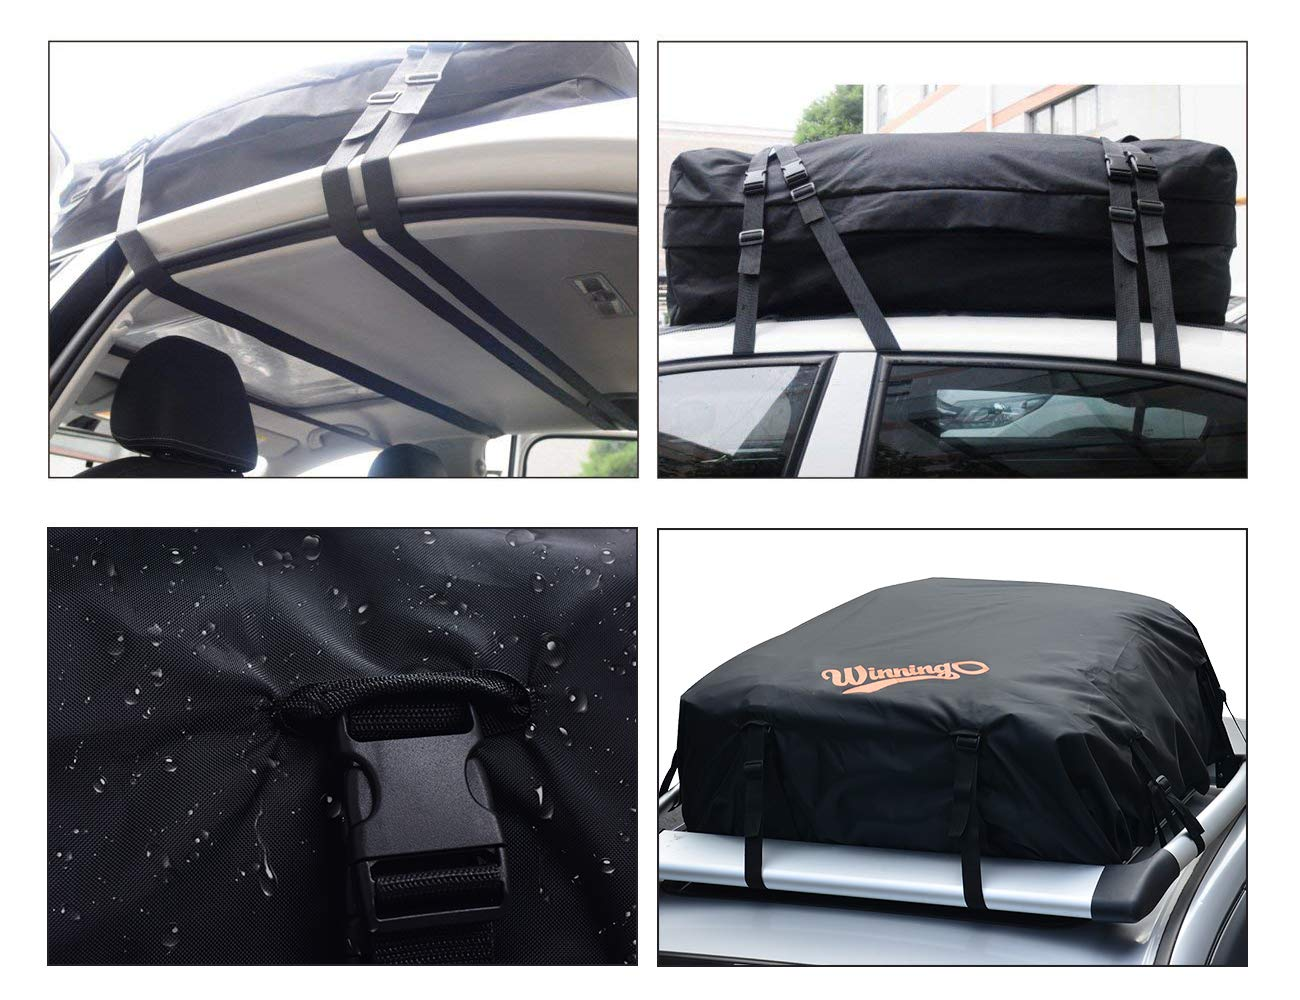 Water Resistant Cargo Bag Easy to Install Soft Rooftop Luggage Carriers Works With or Without Roof Rack WINNINGO Cargo Bag Free Waterproof Rain Cover BLACK-NEW